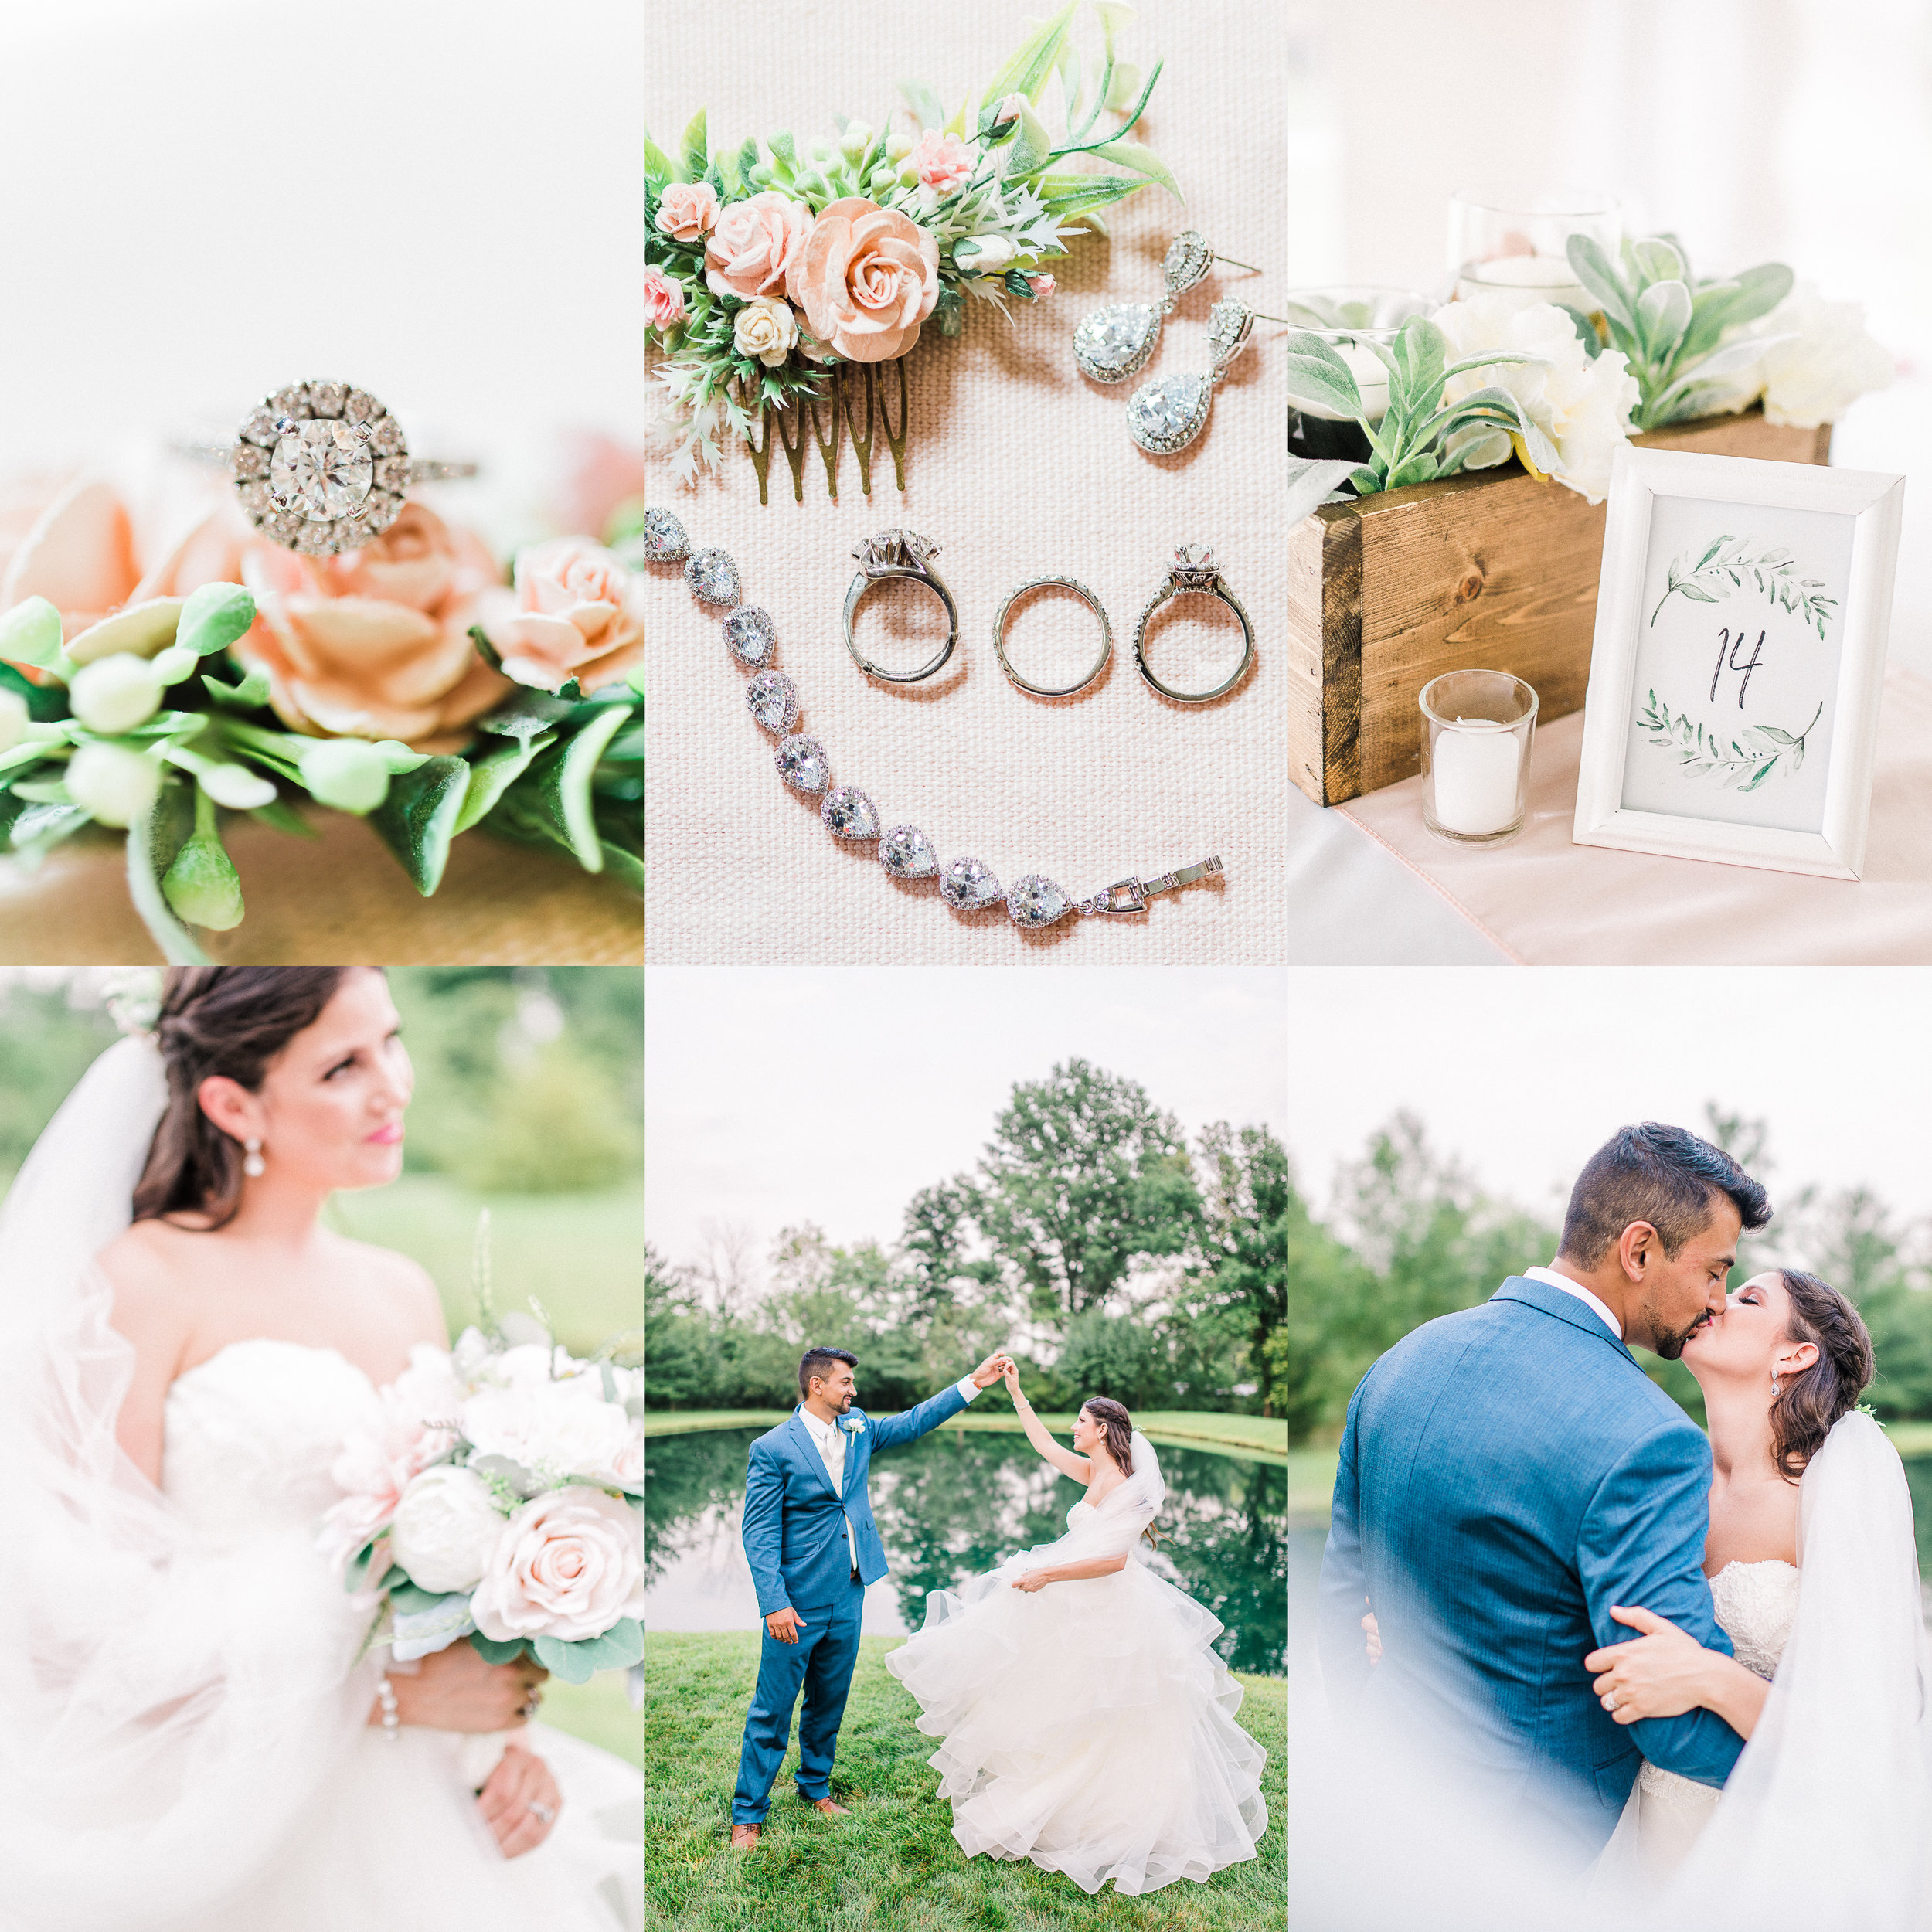 Michele + Jonah | Romantic Backyard Wedding to Celebrate Happily Ever Afters | Indianapolis Elopement & Destination Wedding Photographers